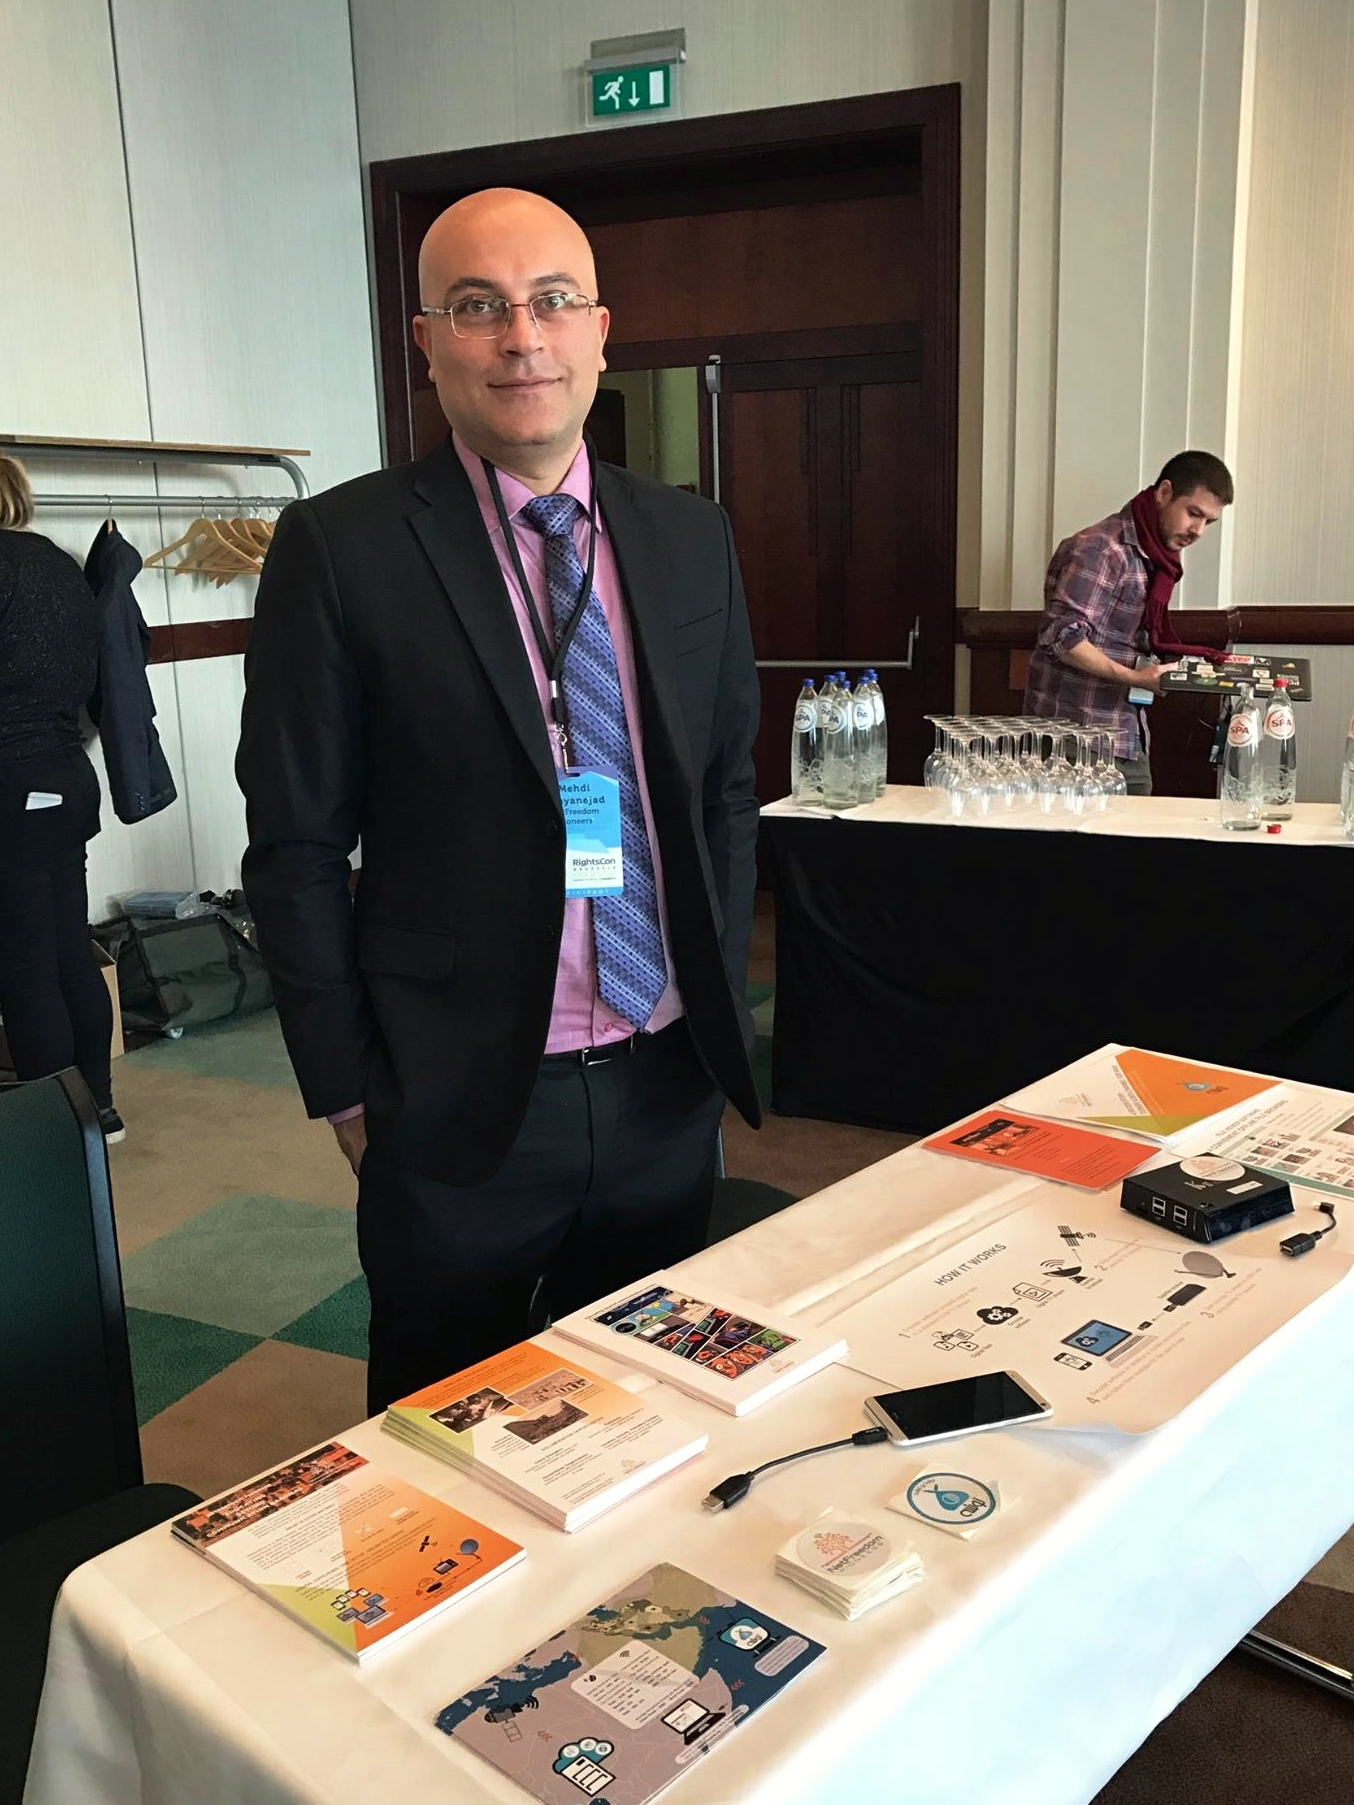 Executive Director Mehdi Yahyanejad represented NFP at a RightsCon booth by providing information, answering questions, and handing out swag related to our innovative technology.